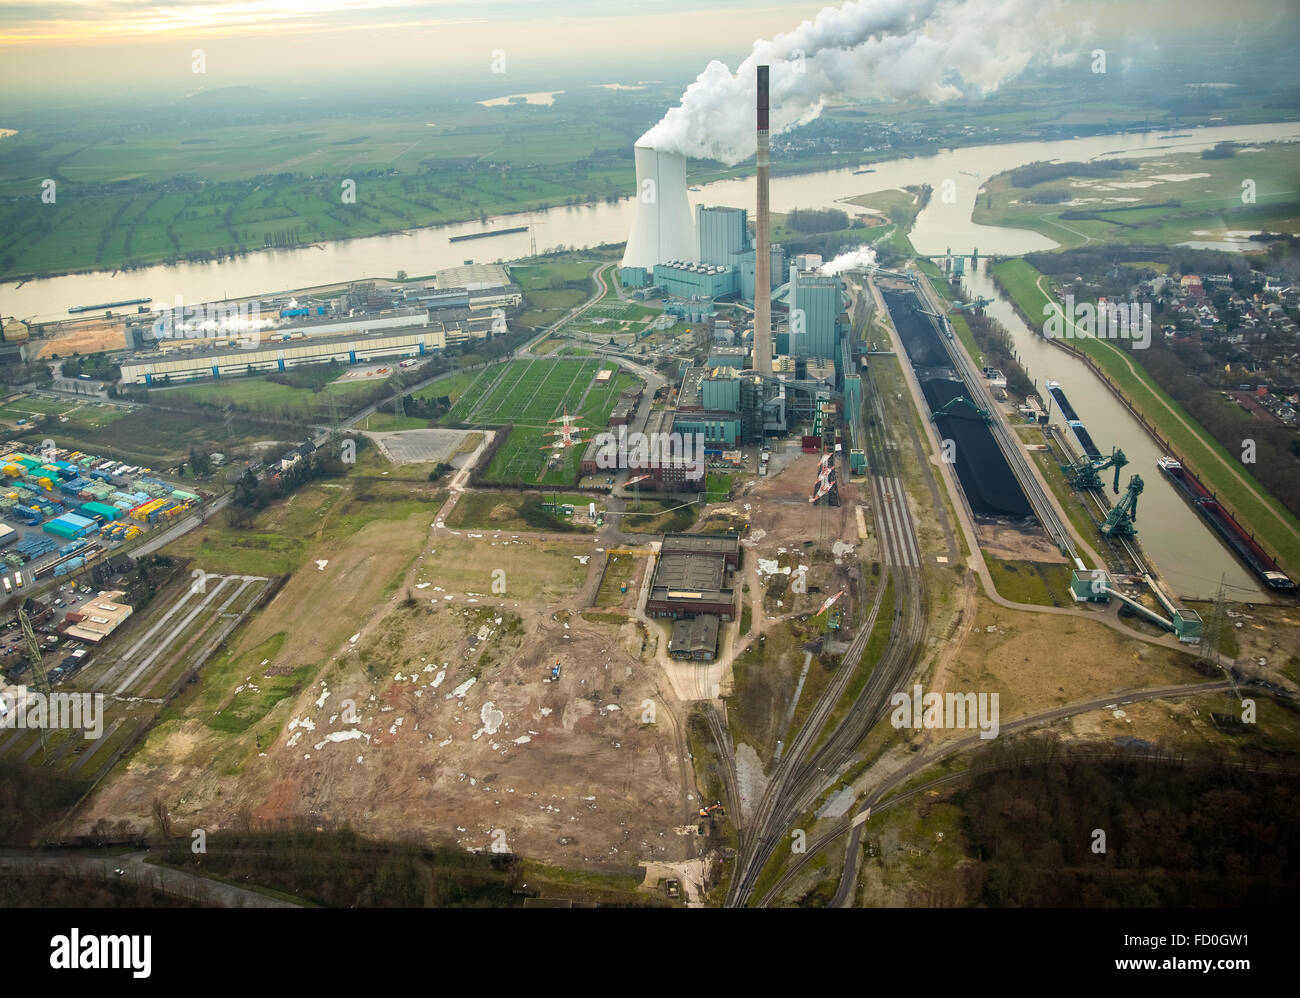 Aerial view, wasteland of the former mine Walsum, coal mine Walsum, STEAG power plant Walsum, coal power plant, - Stock Image